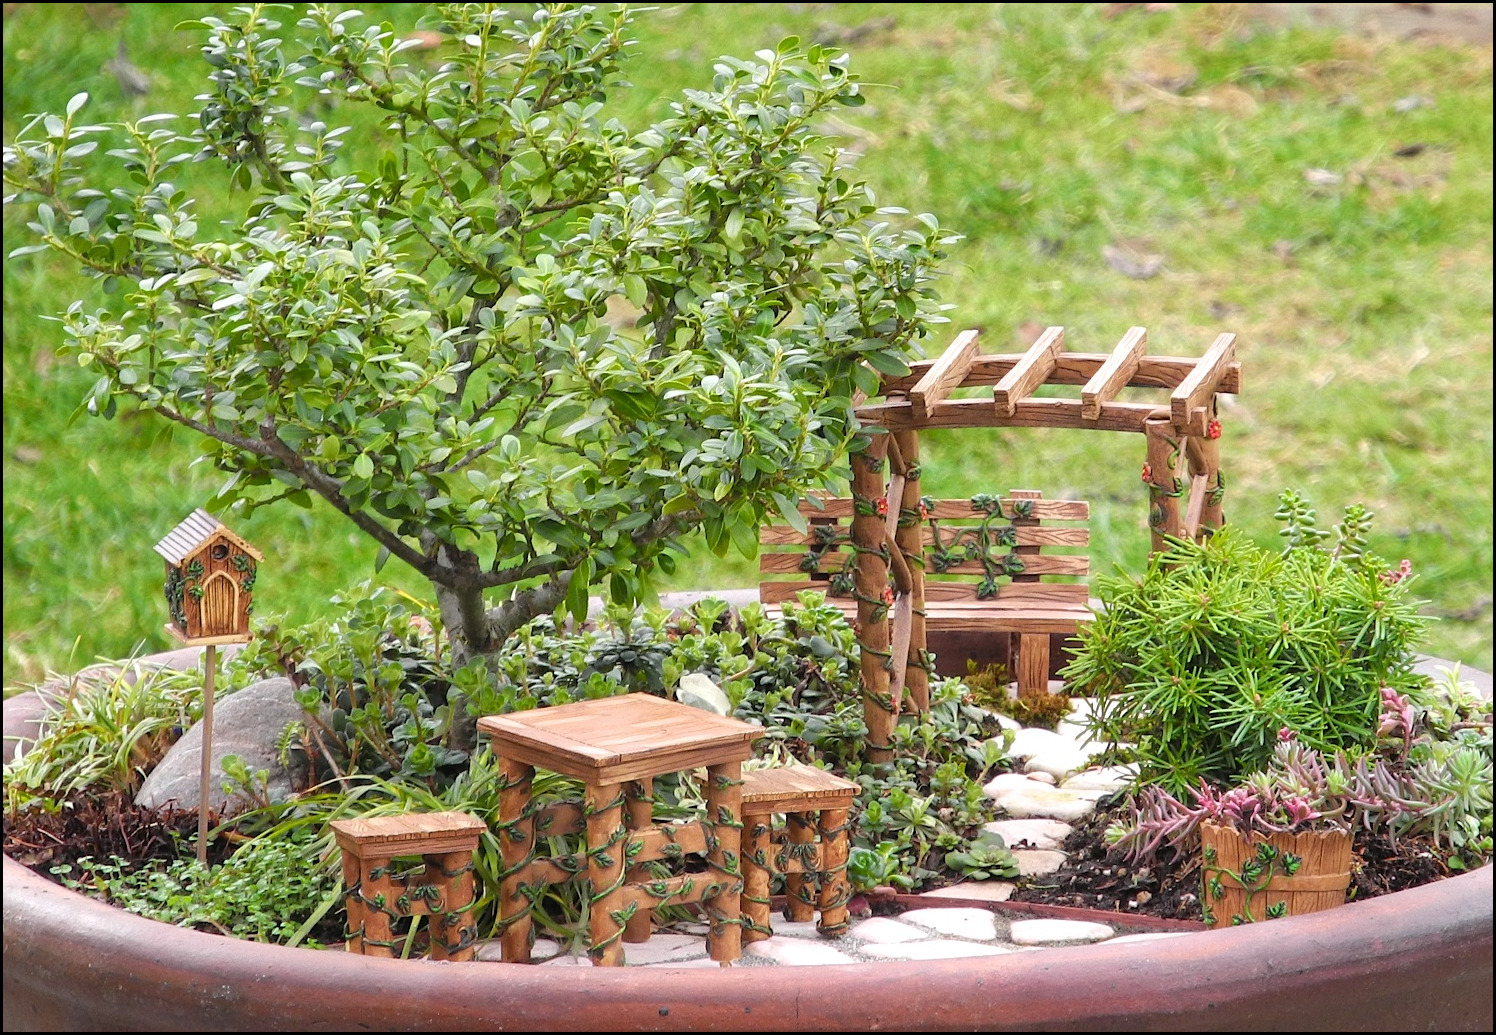 Backyard Statues fairy backyard statues & accents |